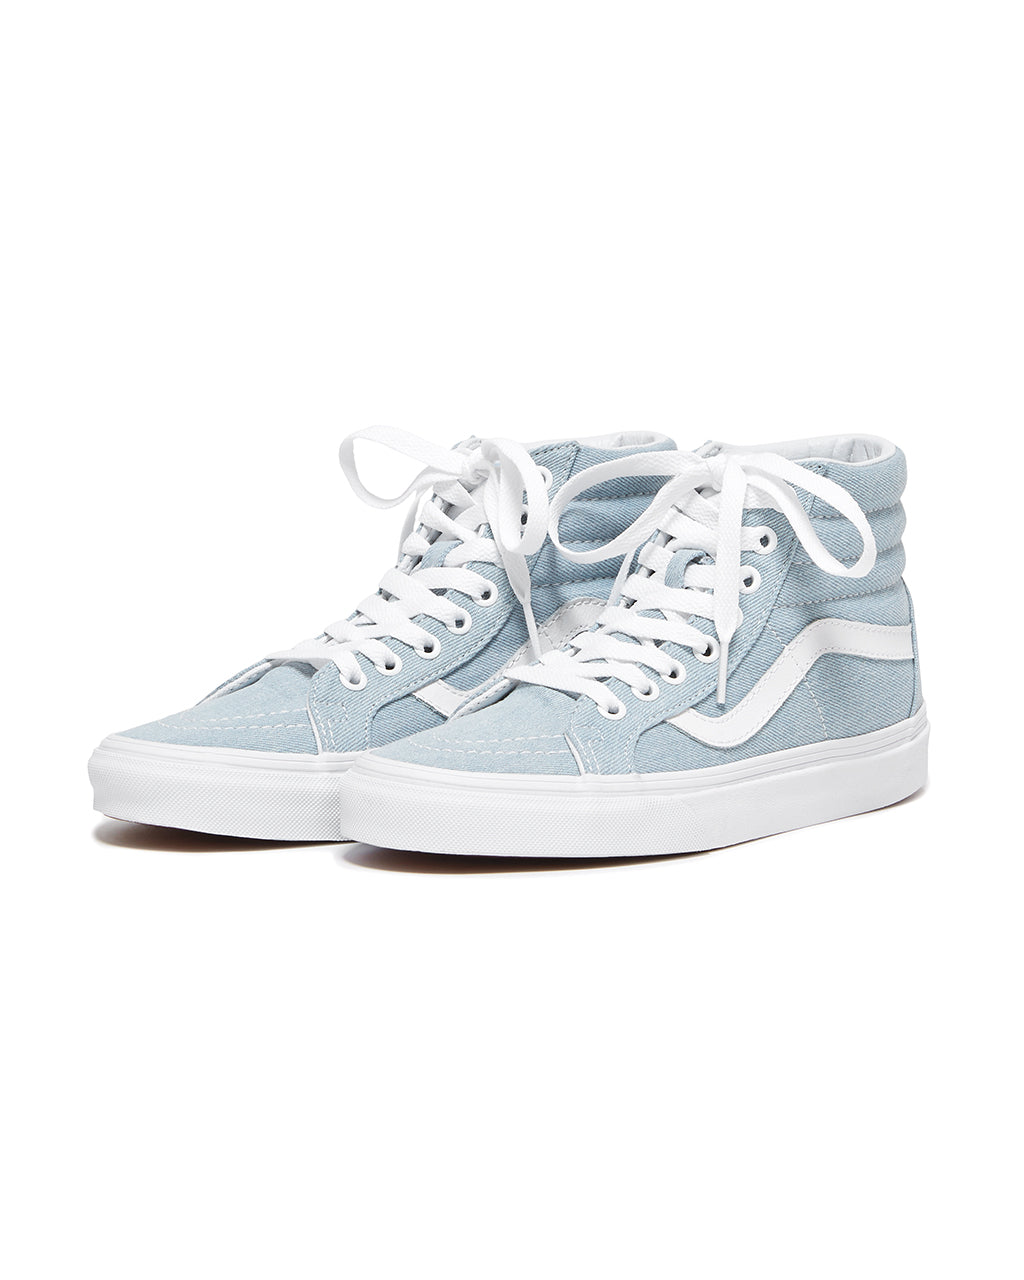 26c96b5f4e sk8-hi reissue - denim by vans - shoes - ban.do